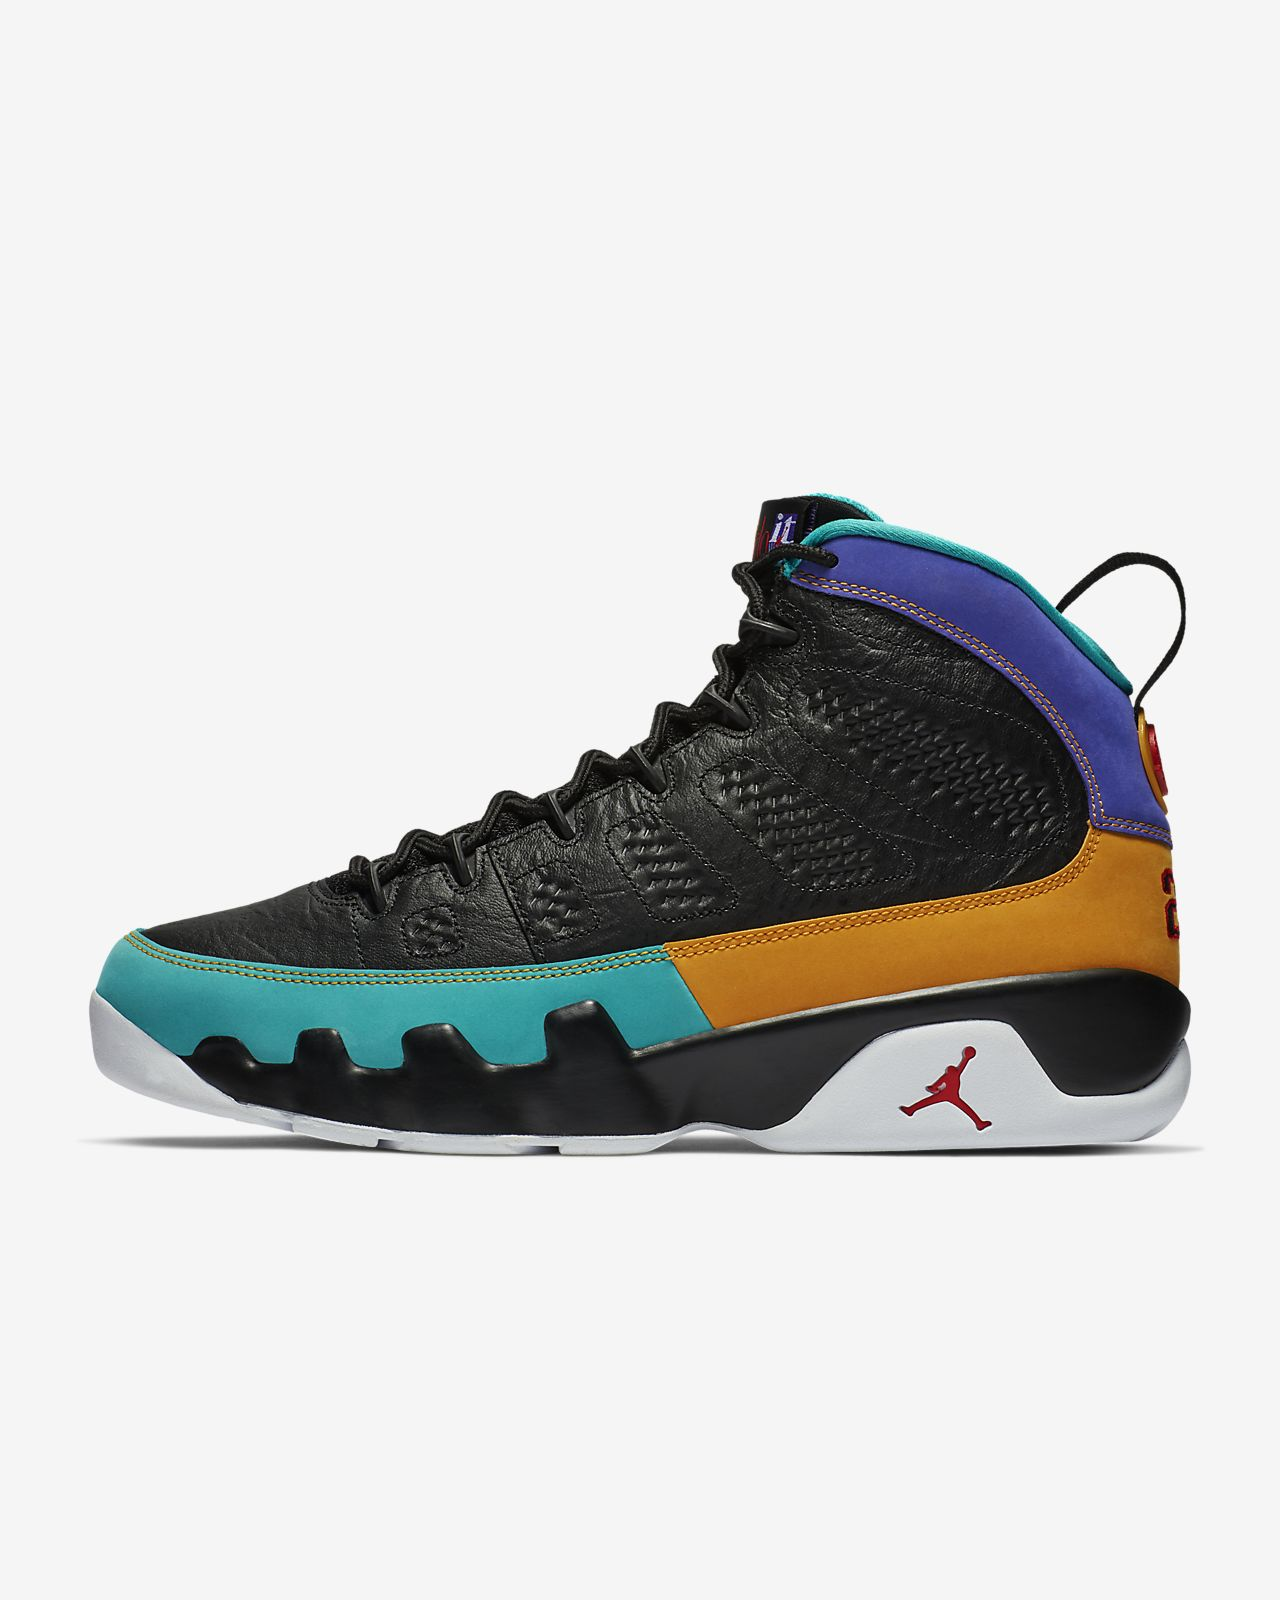 b9d0c7d25c01 Air Jordan 9 Retro Men s Shoe. Nike.com